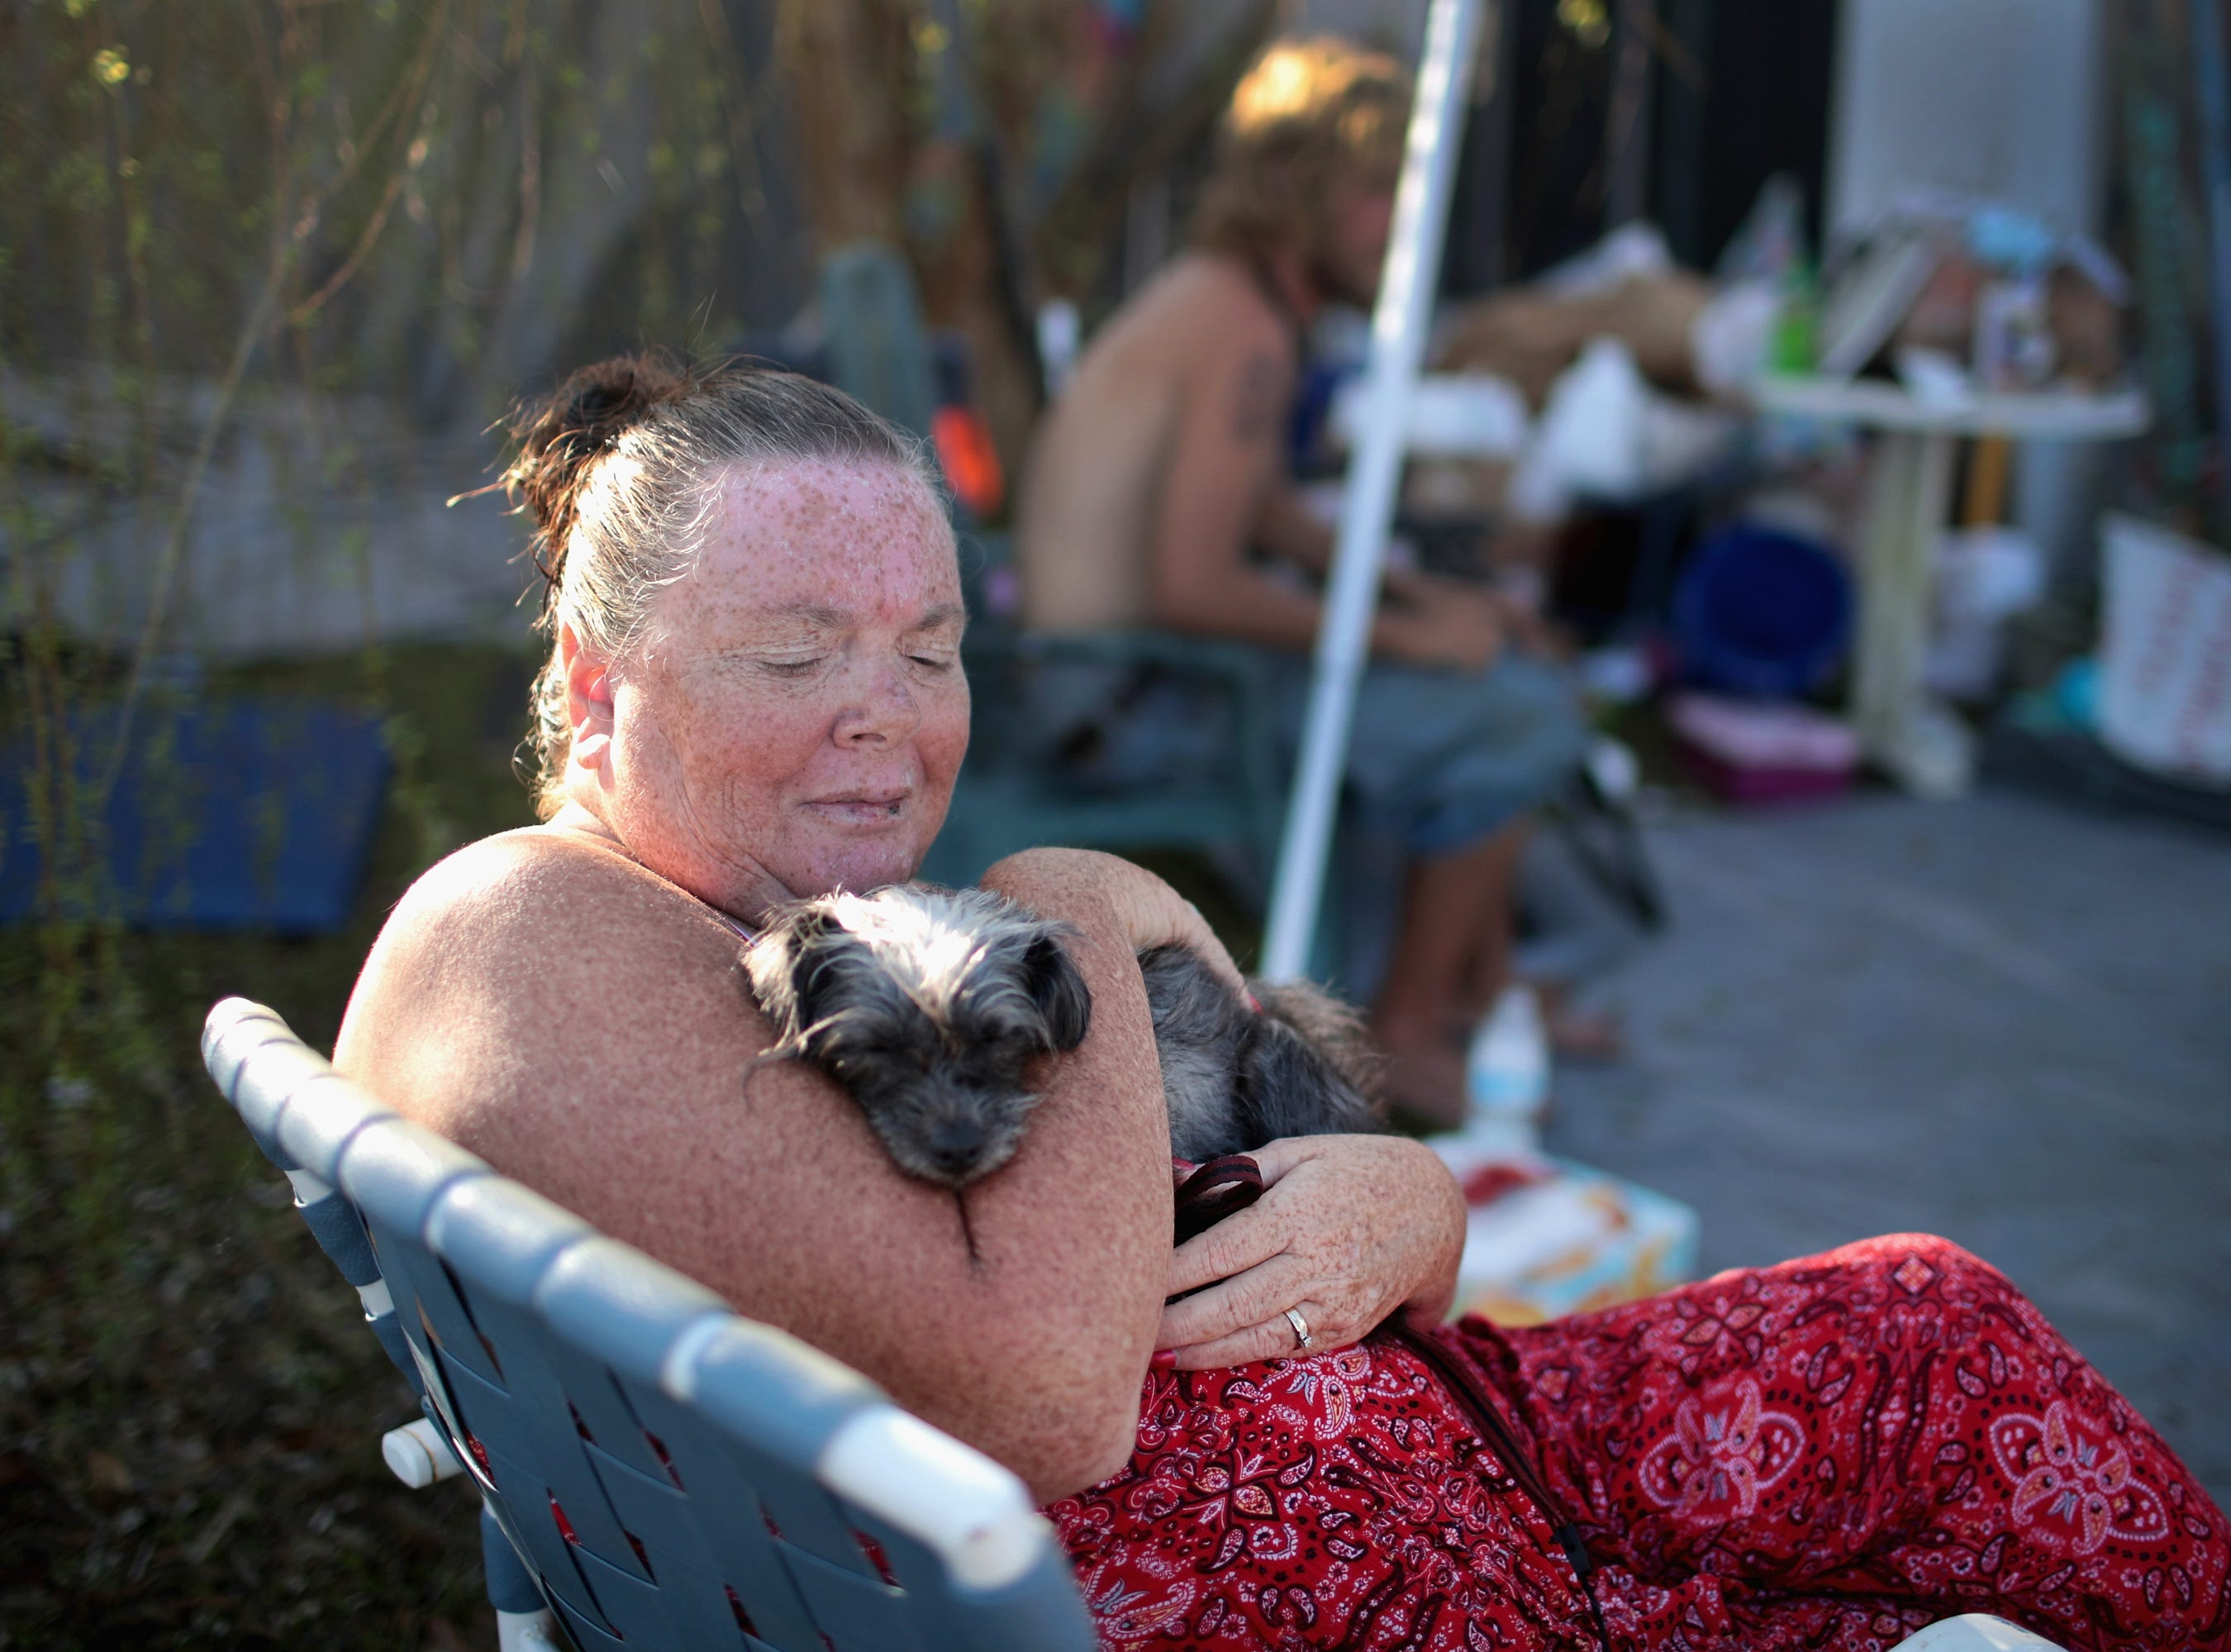 Tracey Lachance sits outside of her home which was severely damaged by Hurricane Michael on Oct. 20, 2018 in Panama City, Fla. Much of Panama City remains without electricity or running water since Hurricane Michael slammed into the Florida Panhandle on October 10.